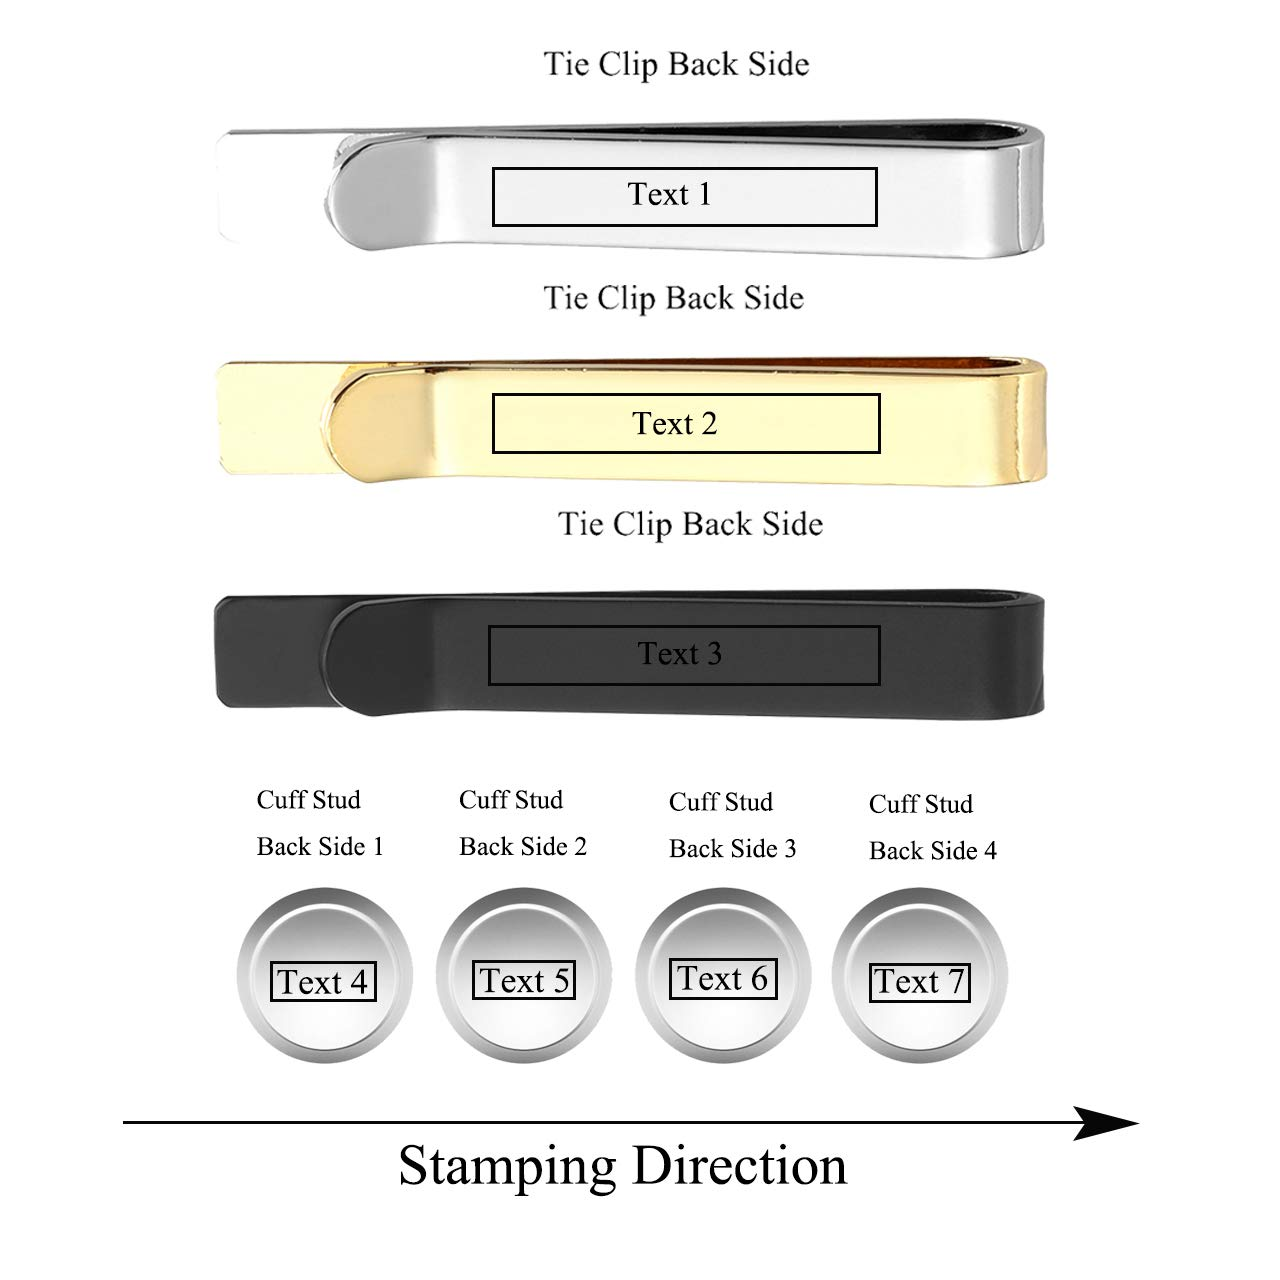 Zysta Gold Silver Black Tie Clips Cuff Links Shirt Studs Set Stainless Steel Free Engraving Name ID Customized Wedding Business Mens Tuxedo Formal Dress Gift